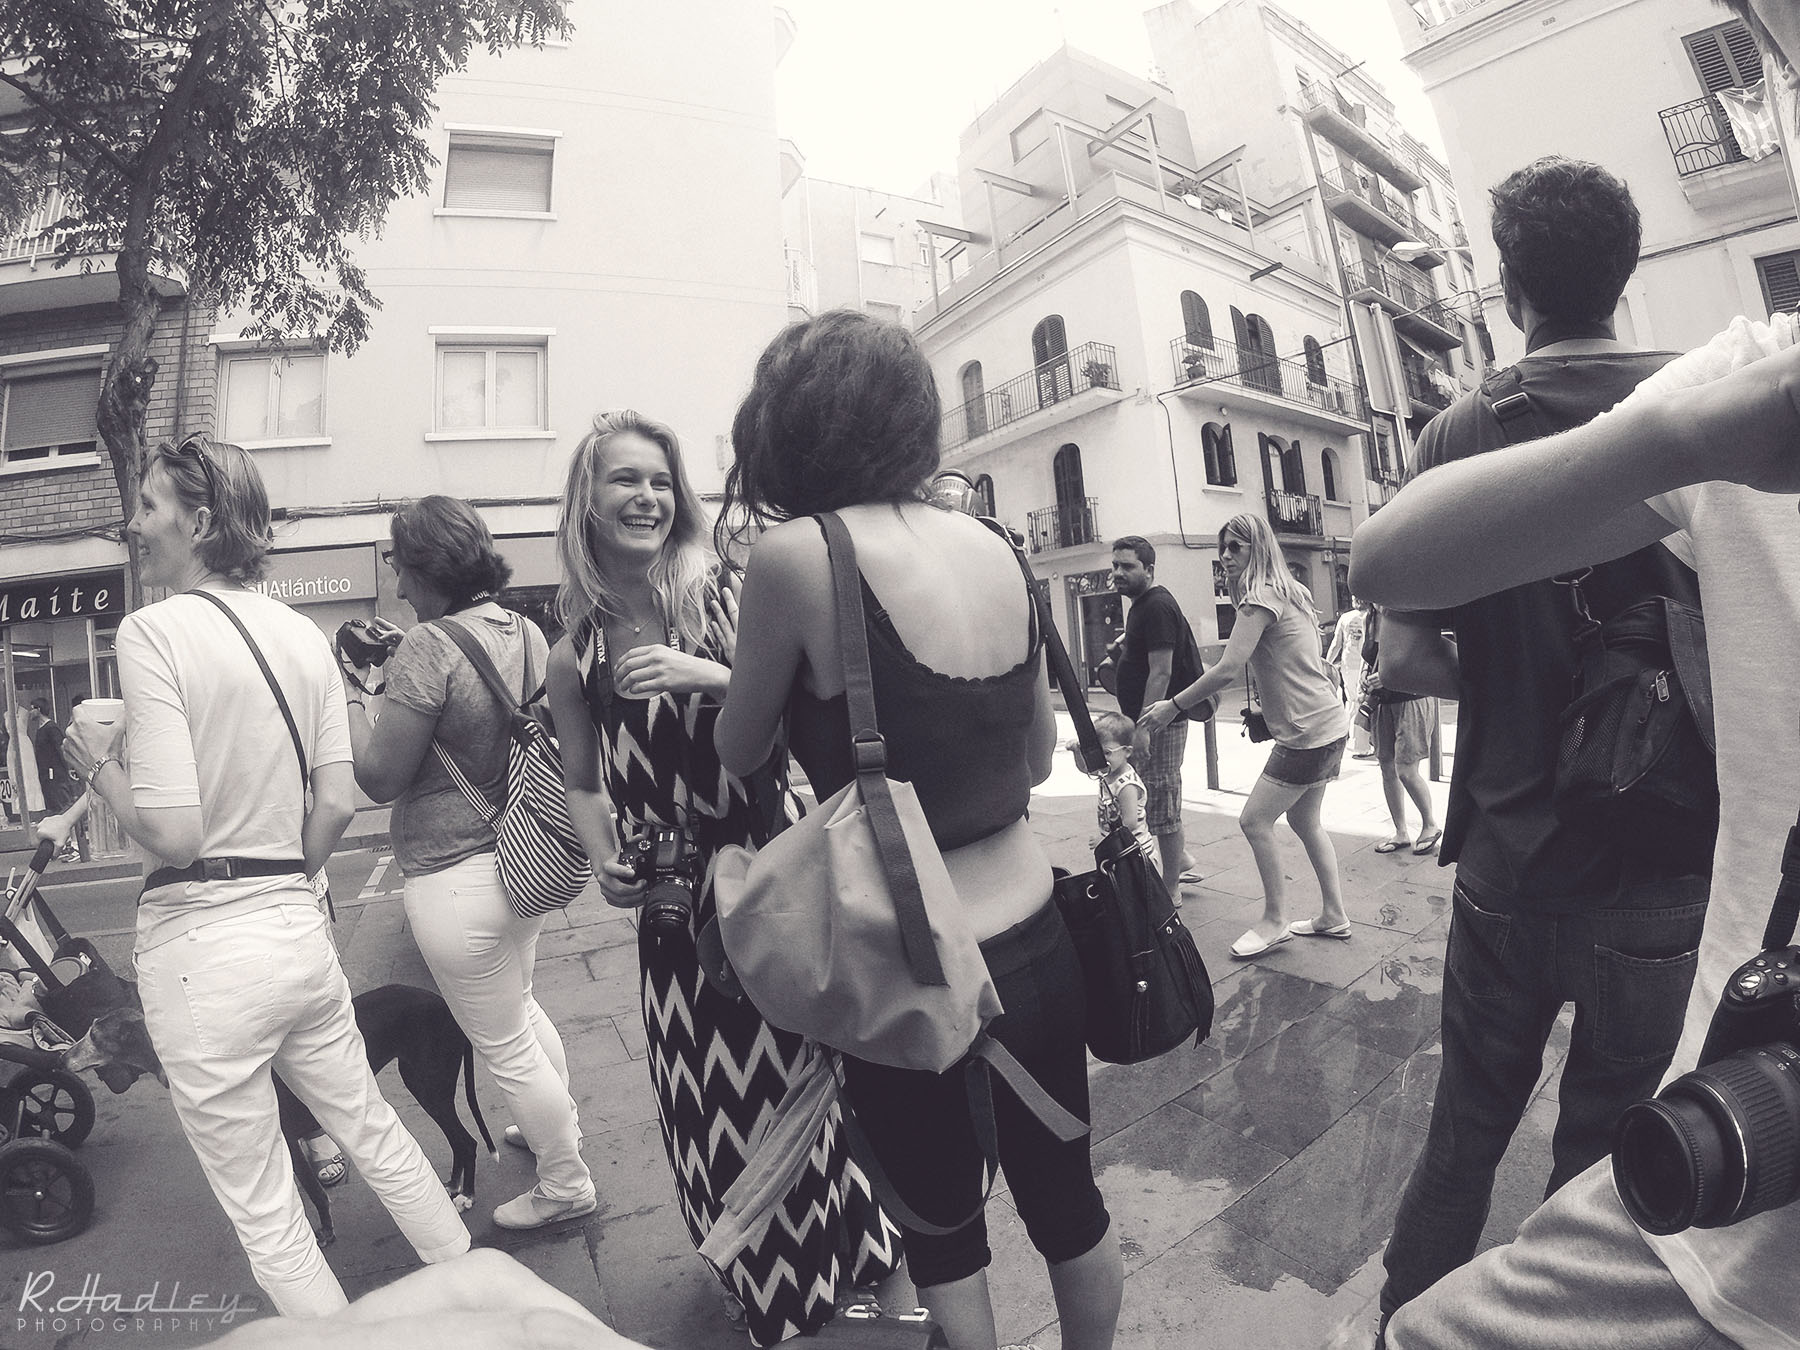 Photography event in Barcelona with on board GoPro camera